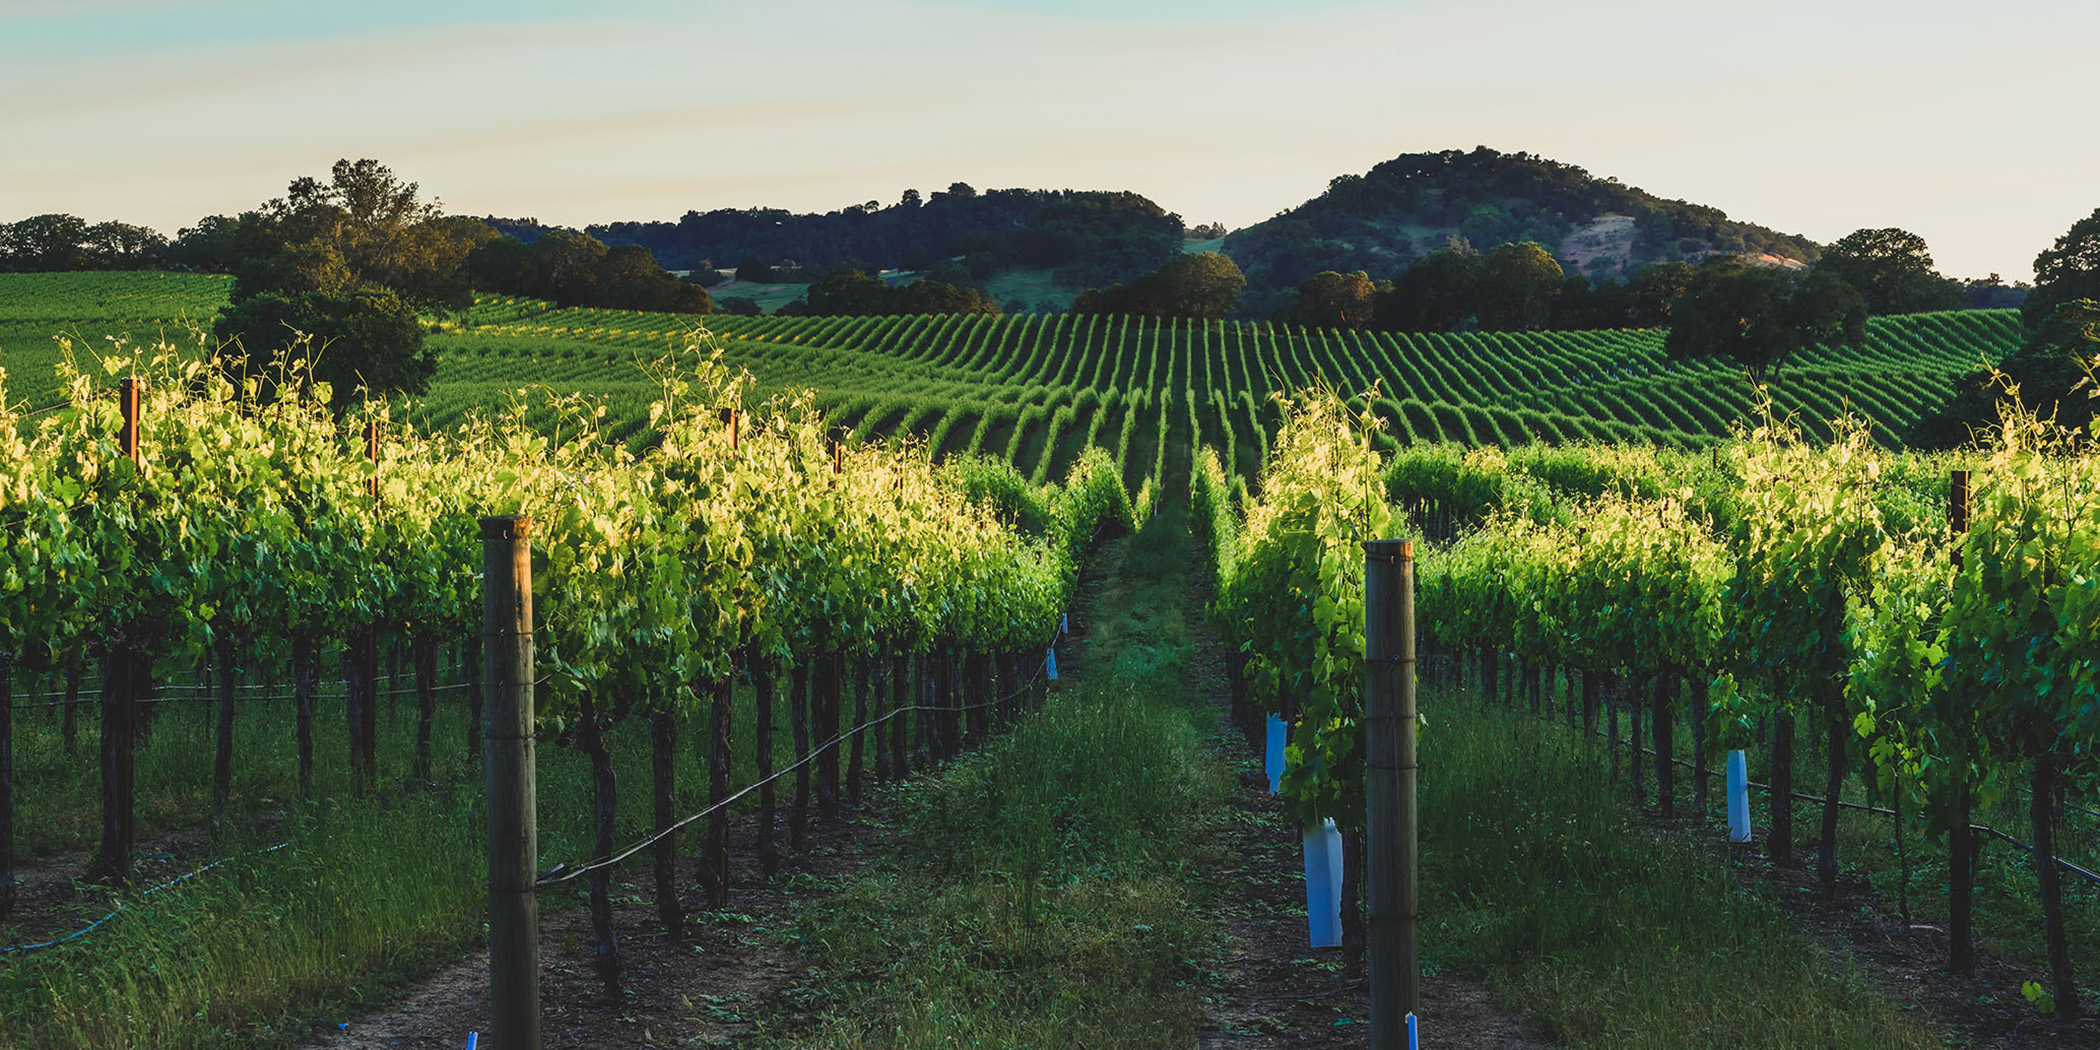 Sunset in the vineyards of Sonoma